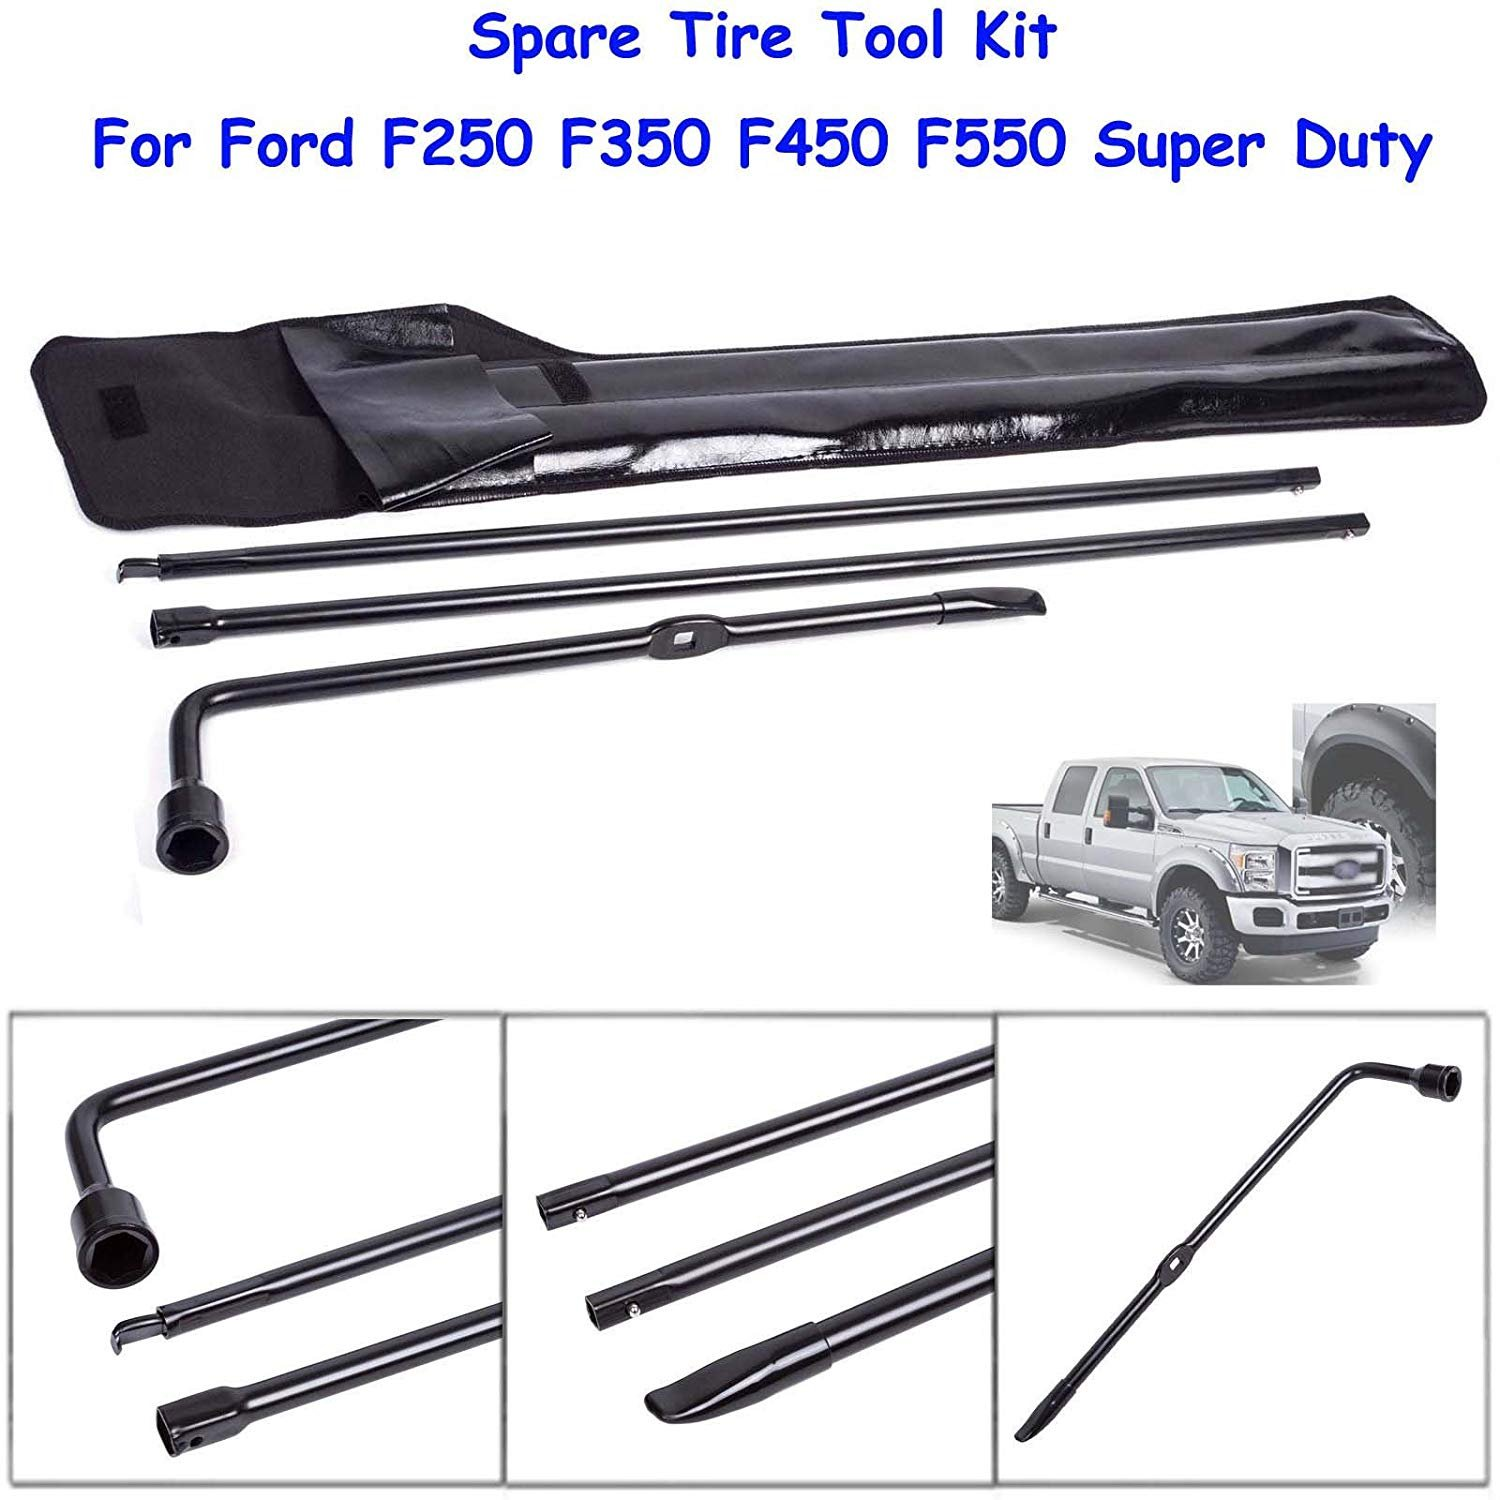 Spare Tire Tool Lug Wrench For Ford F250 F350 F450 F550 2004 F 250 Super Duty Plastic Kit Iron Replacement With Carry Bag 1 Year Warranty Automotive